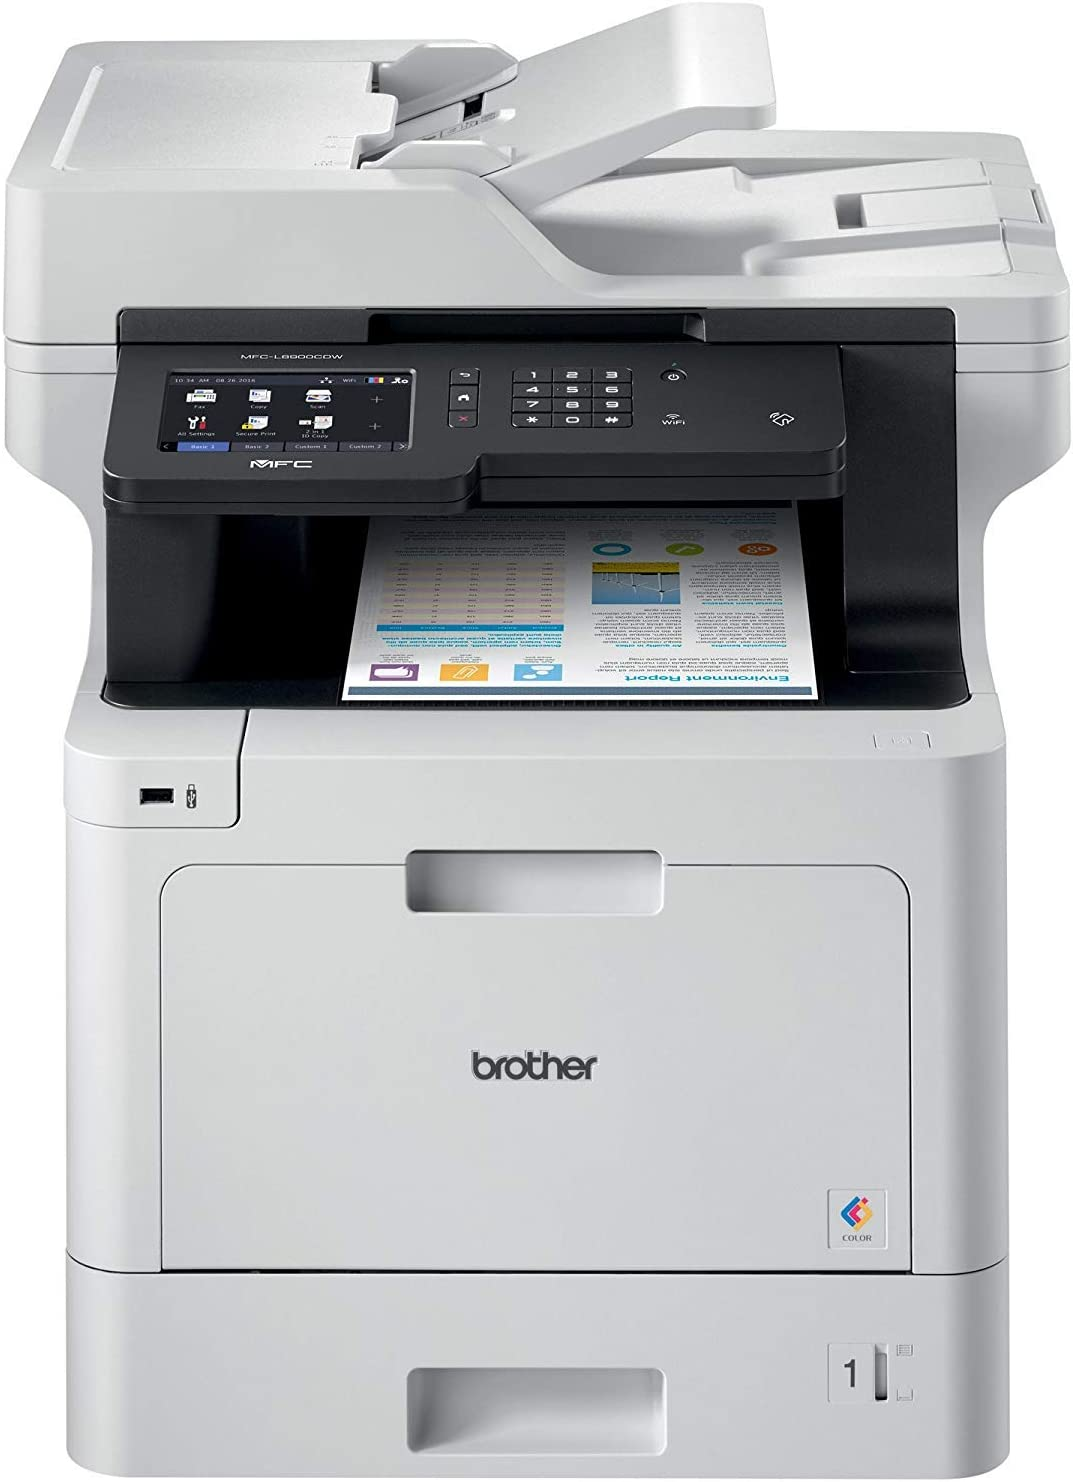 Brother MFC-L8900CDW Business Color Laser All-in-One Printer, Advanced Duplex & Wireless Networking, Business Printing, Flexible Network Connectivity, Mobile Device Printing & Scanning